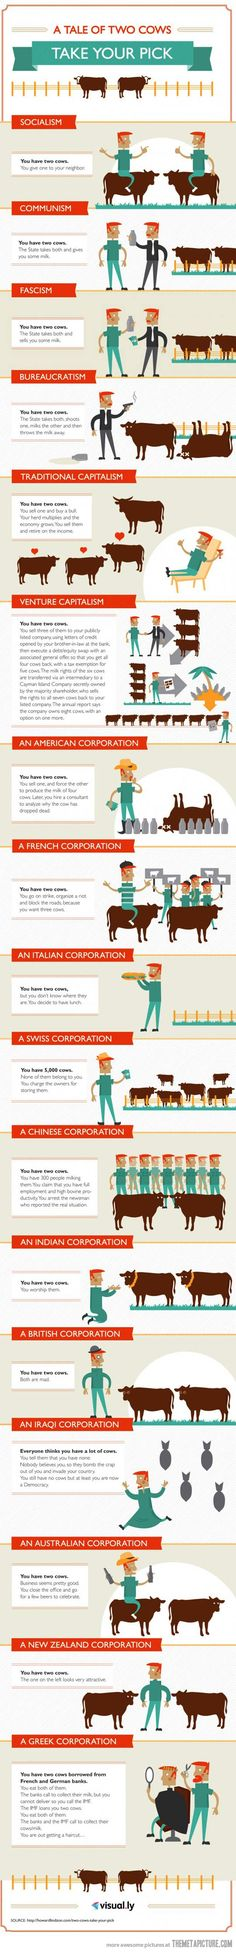 The world's economy explained using just two cows #accountinghumour